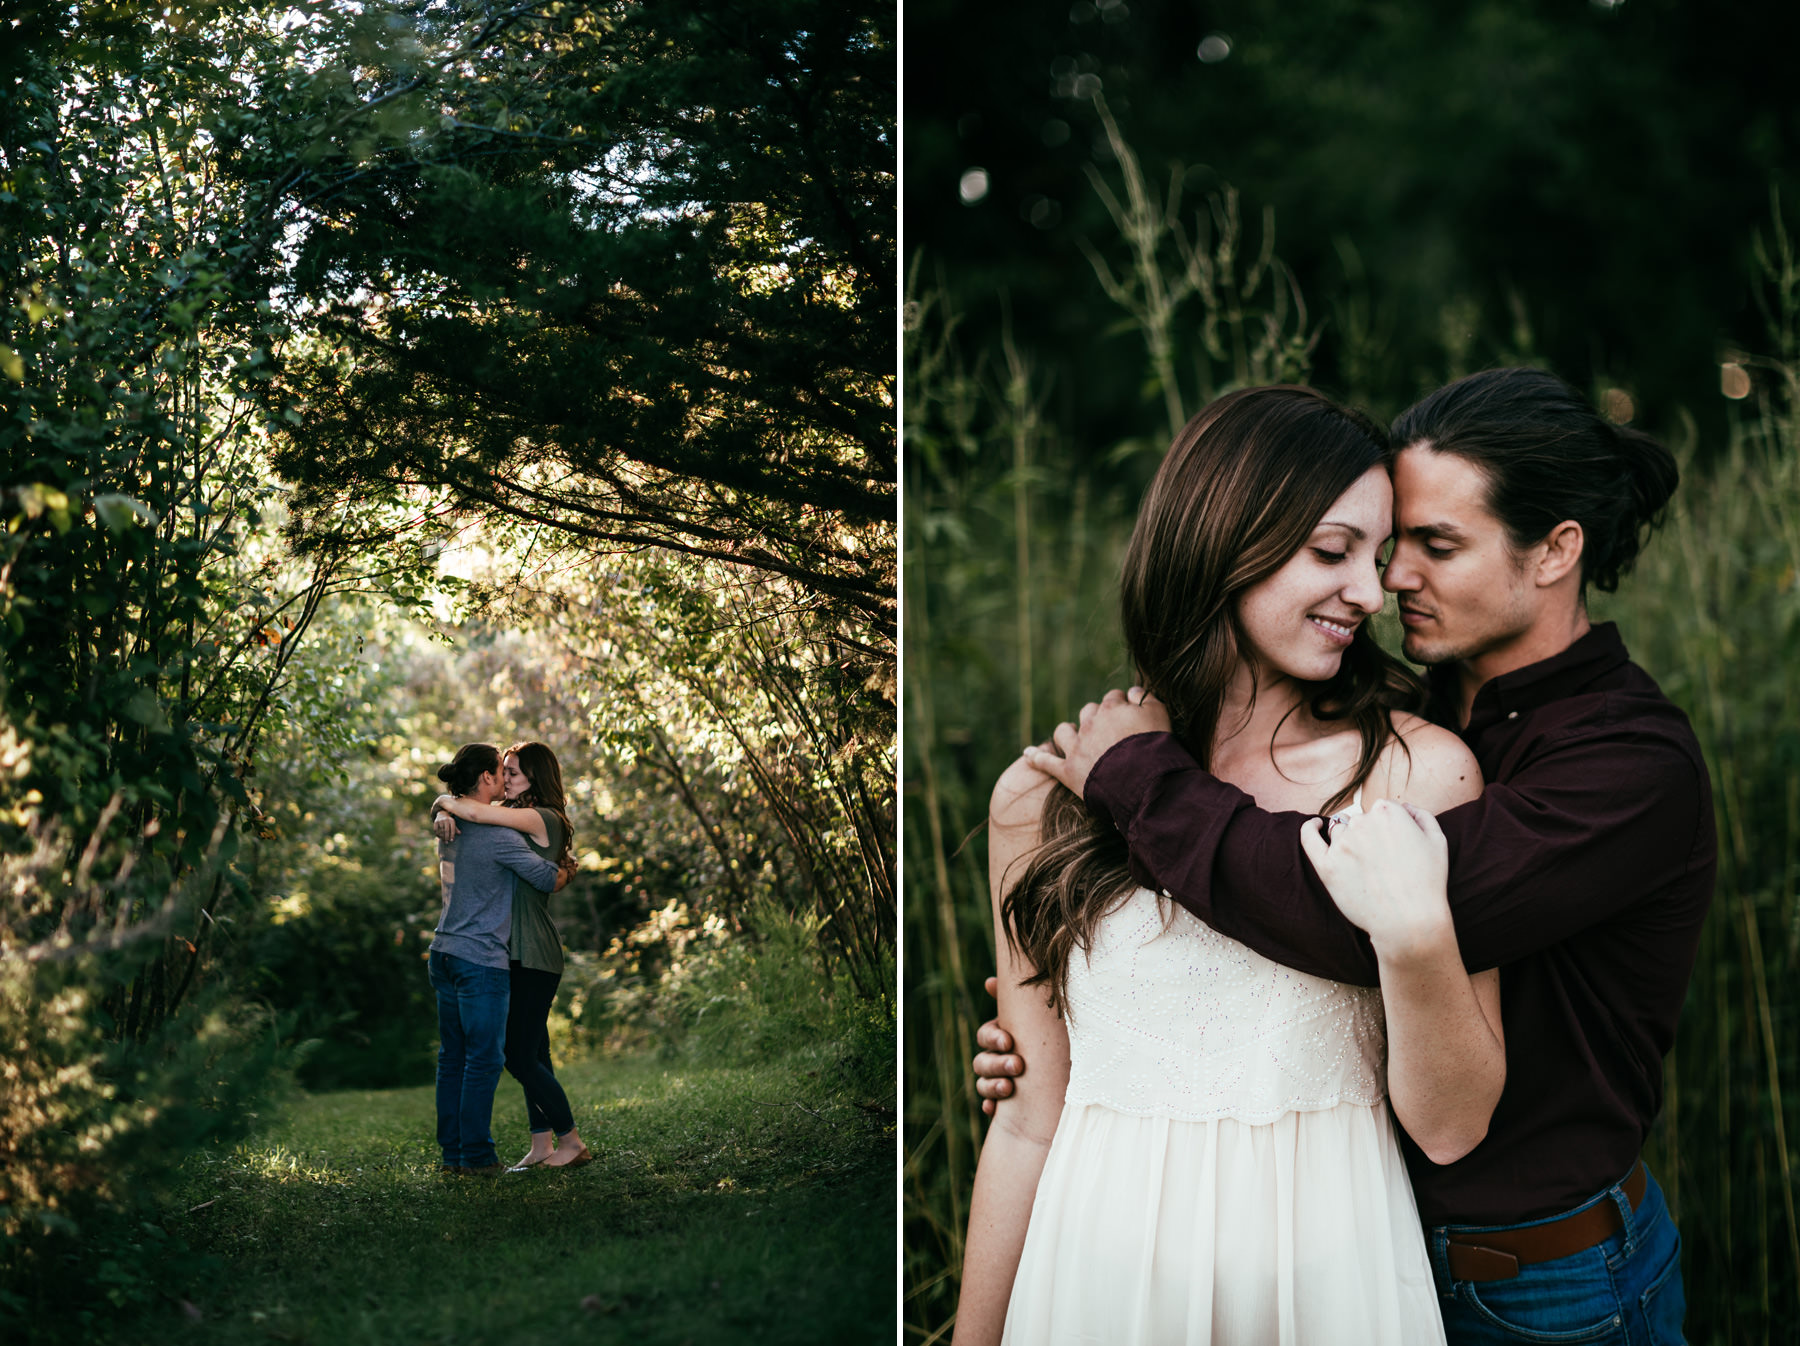 229_Weston Bend State Park Engagement Session Kansas City, Missouri_Kindling Wedding Photography.JPG